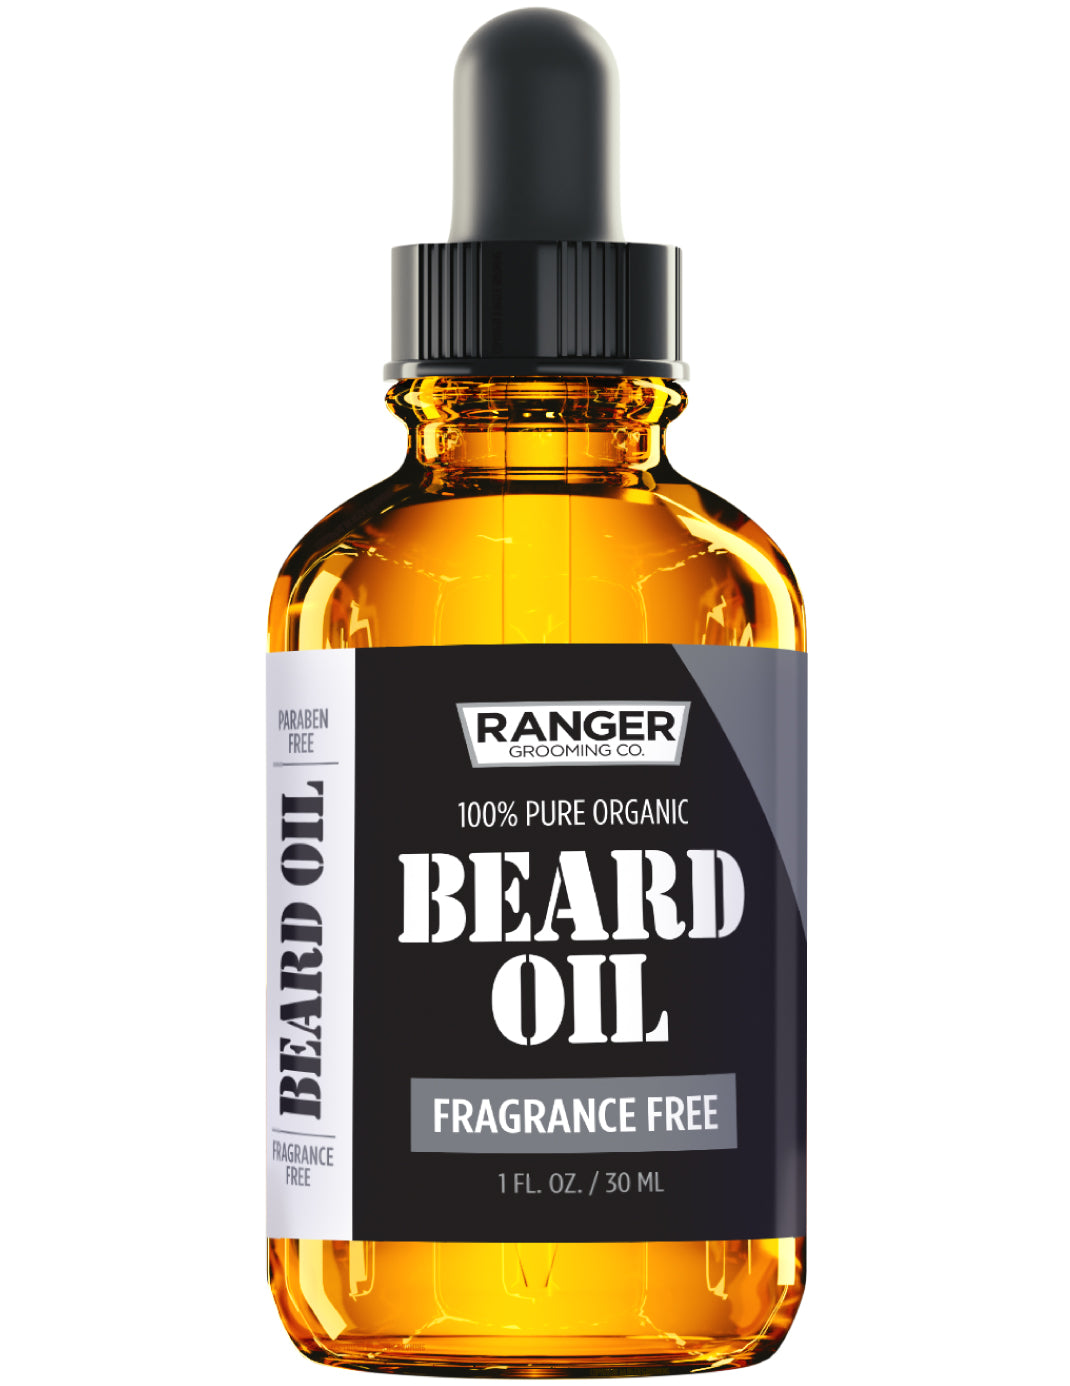 Beard Oil - Fragrance Free - 1 oz